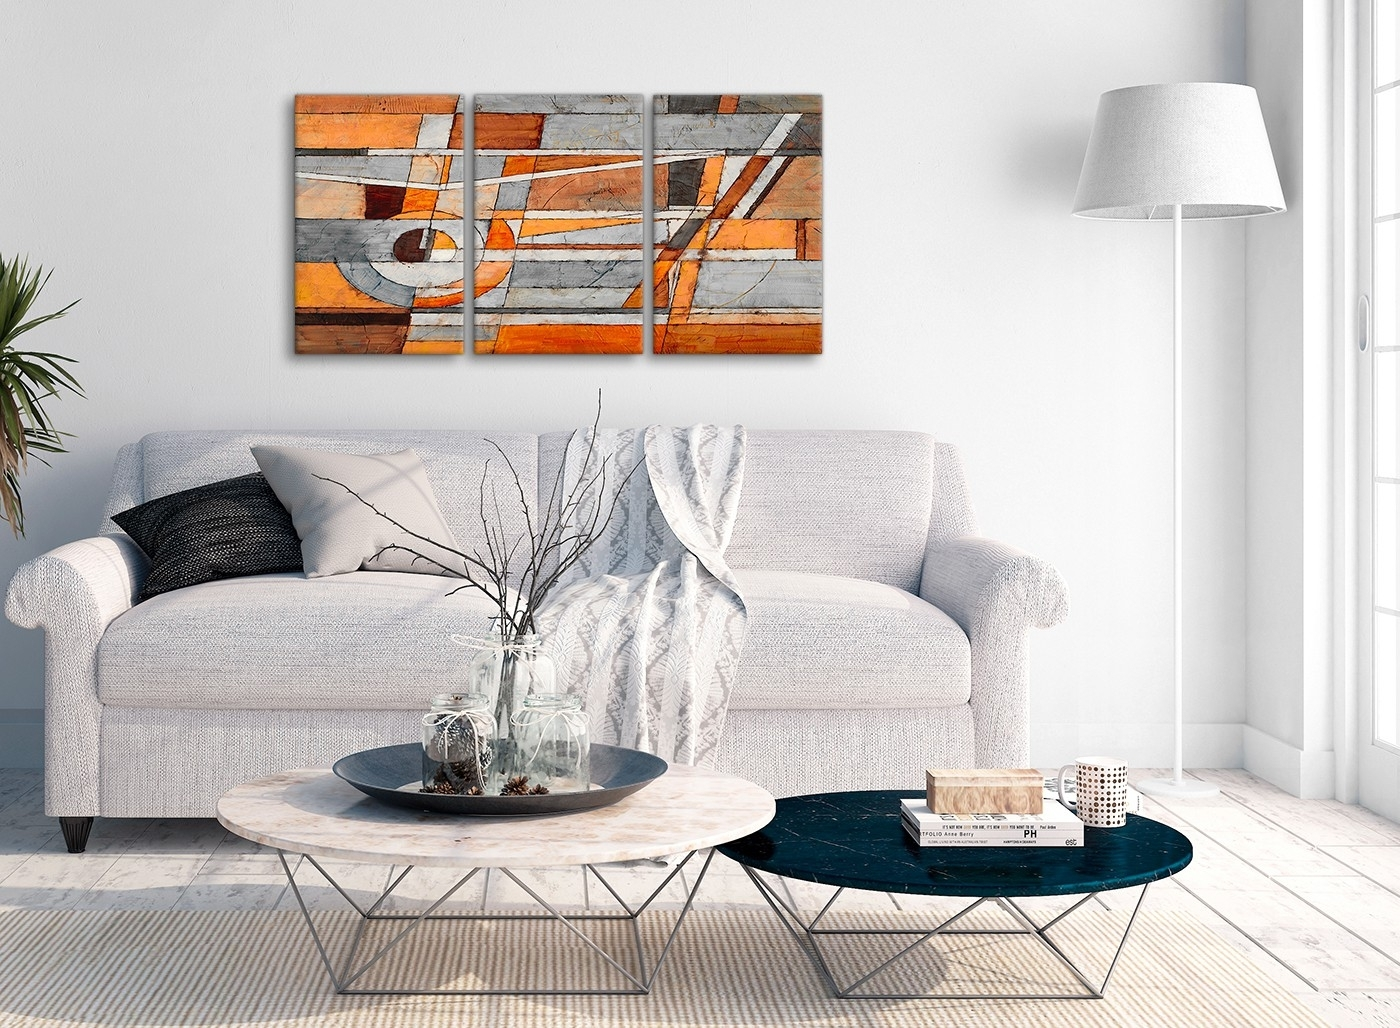 3 Piece Burnt Orange Grey Painting Office Canvas Wall Art Decor Inside Most Recent Gray Canvas Wall Art (View 4 of 20)